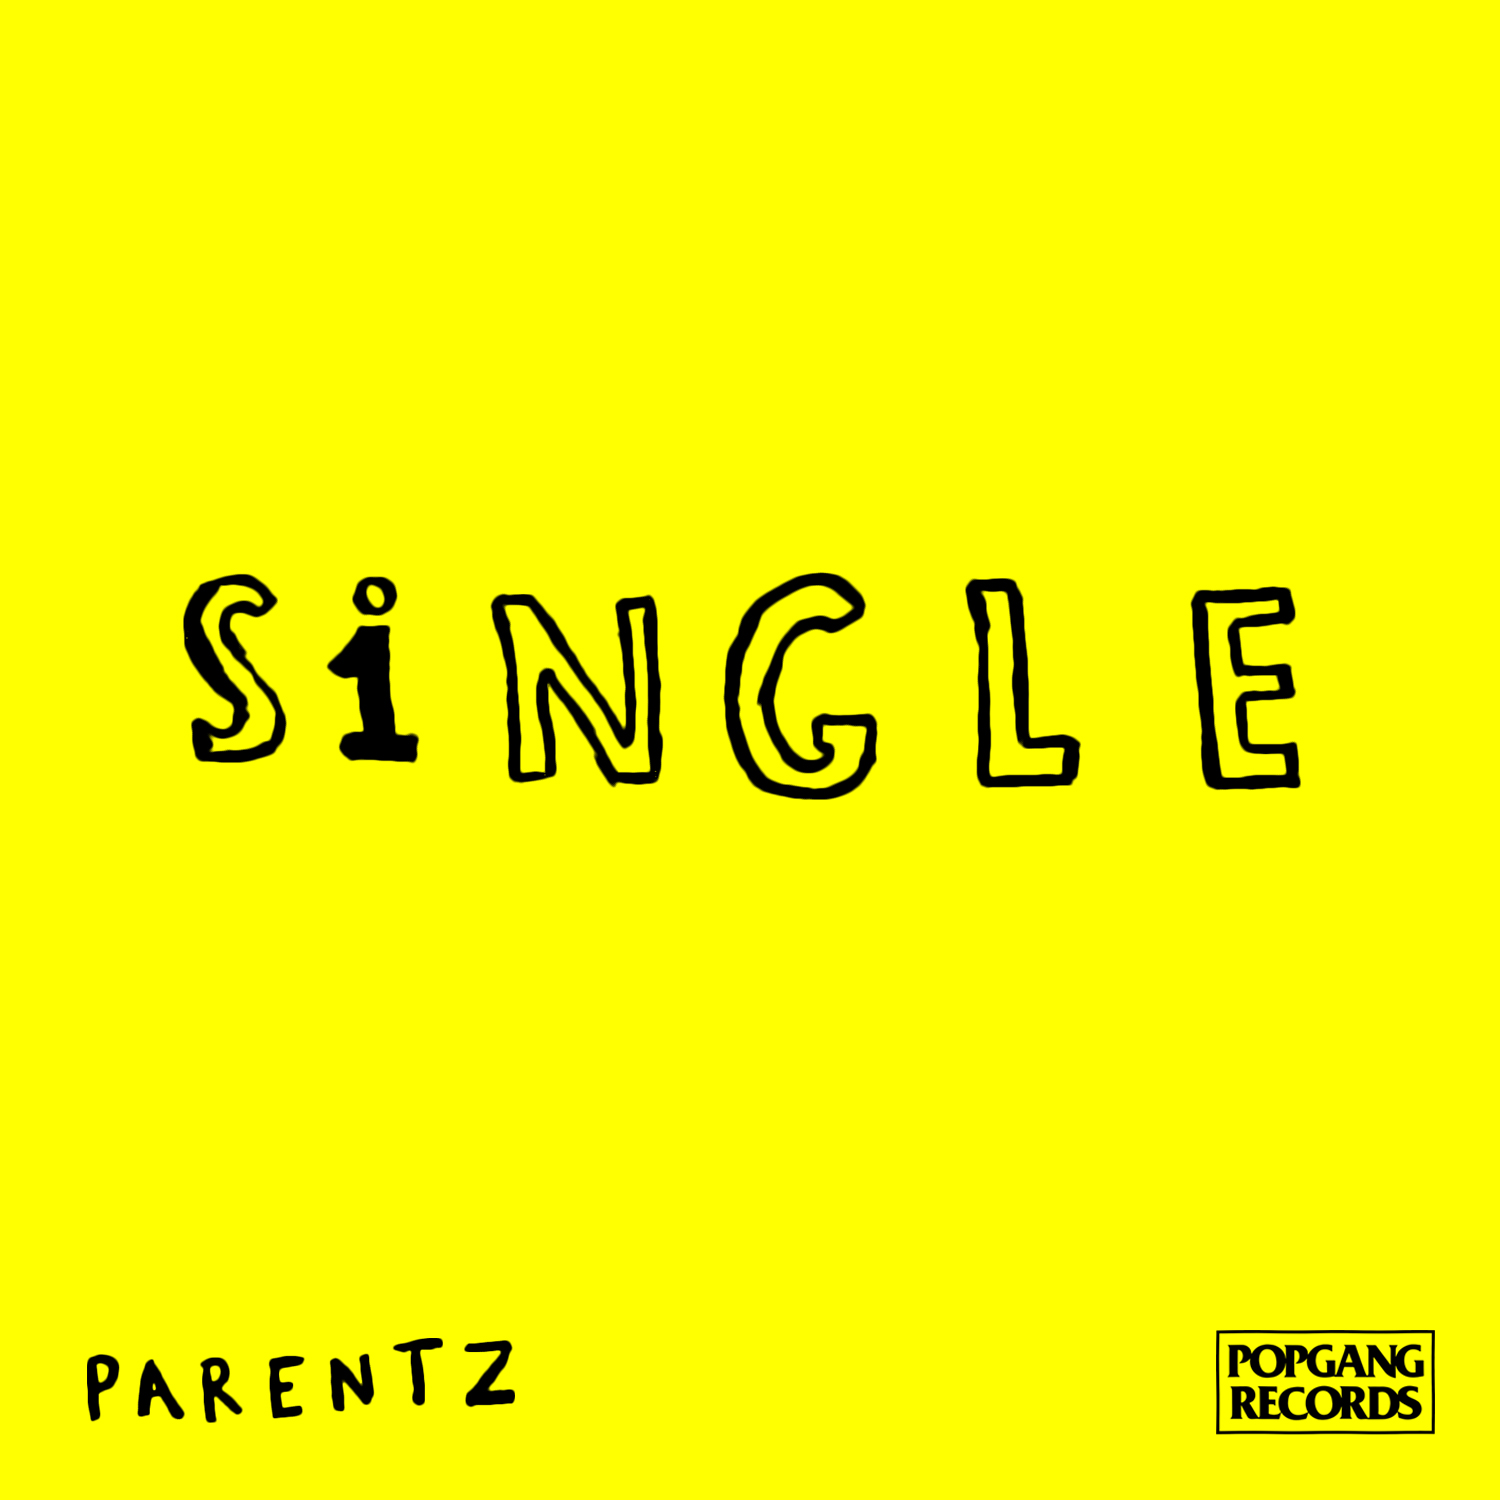 PARENTZ_SINGLE_ART_YELLOW_2_final.jpg